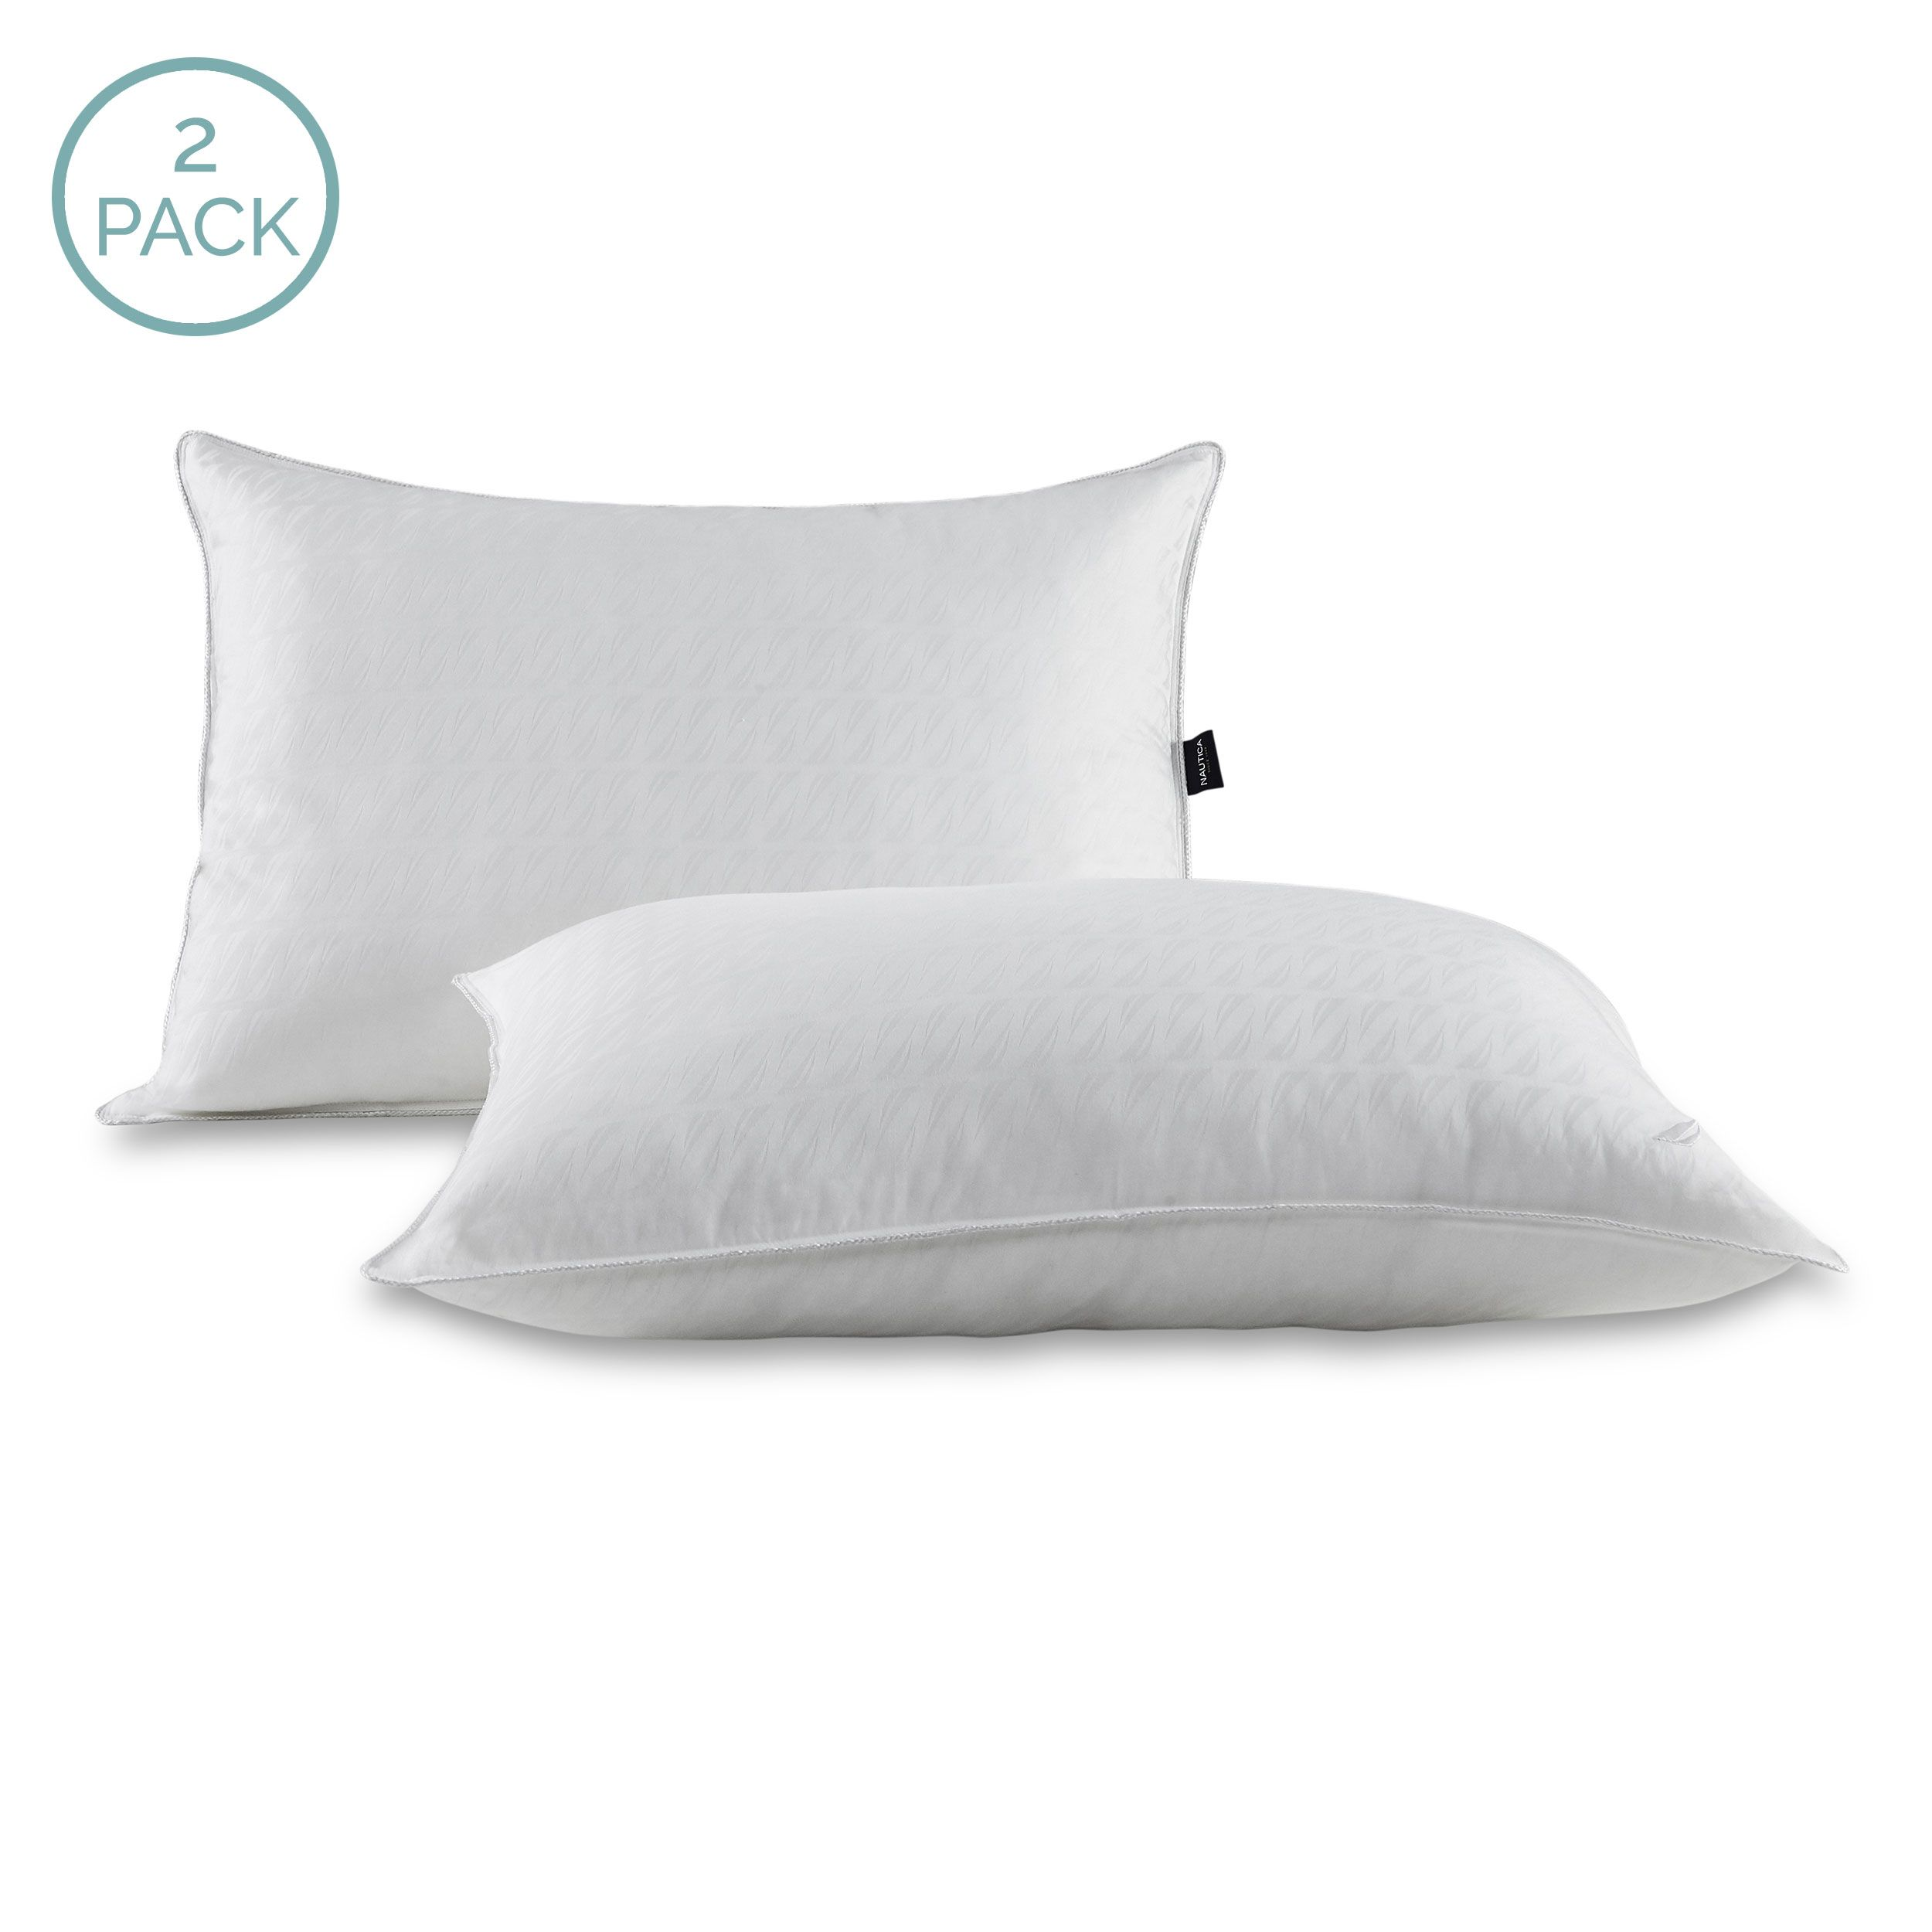 Nautica Down Alternative Pillow 2 Pack Pillows Bed Pillows Sleeping Positions